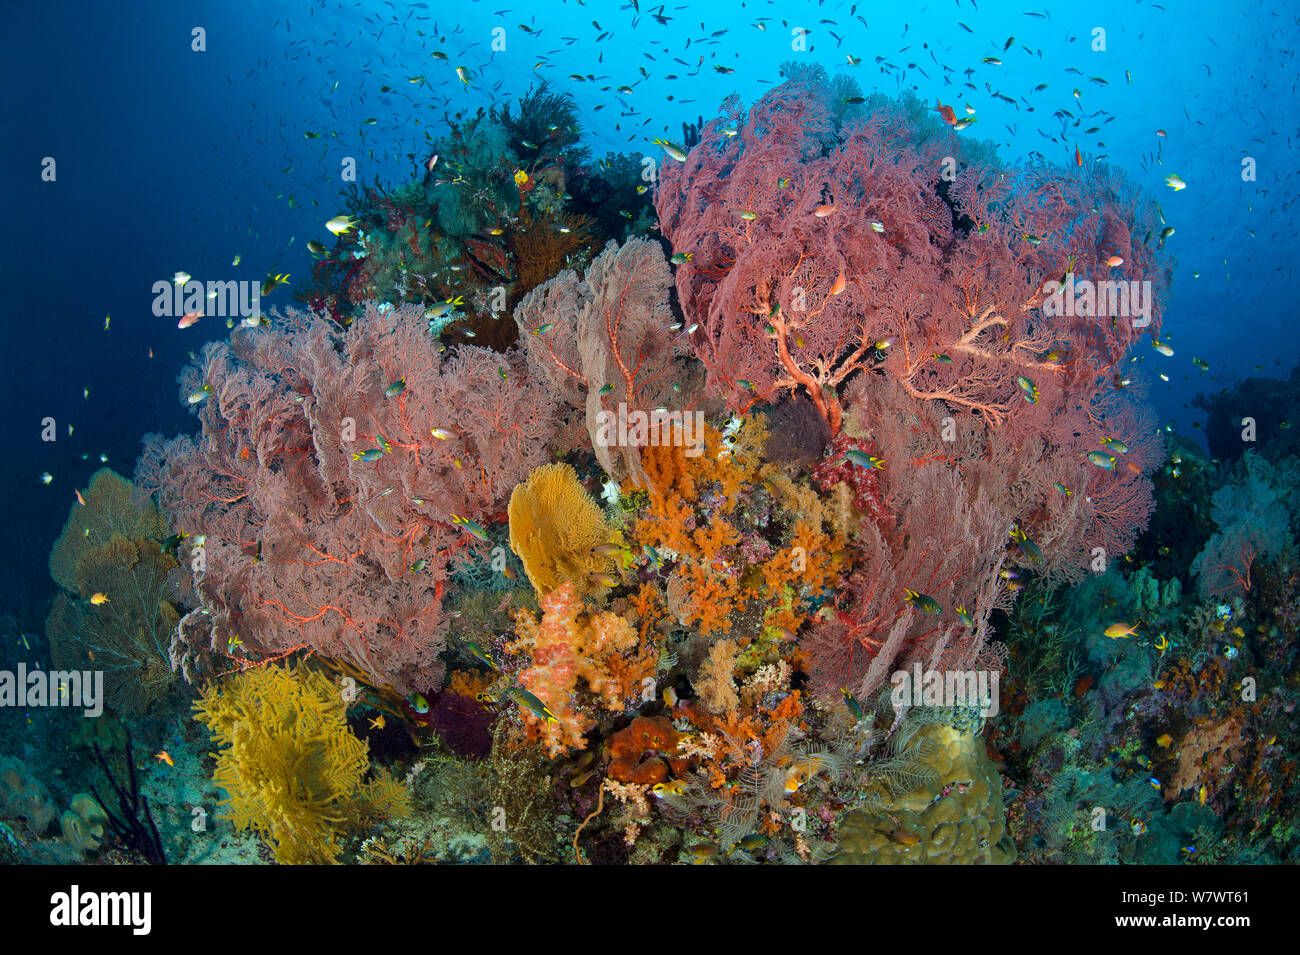 Thriving reef scene, with Seafans (Melithaea sp.) and reef fish. Boo West, Misool, Raja Ampat, West Papua, Indonesia. Ceram Sea. Stock Photo